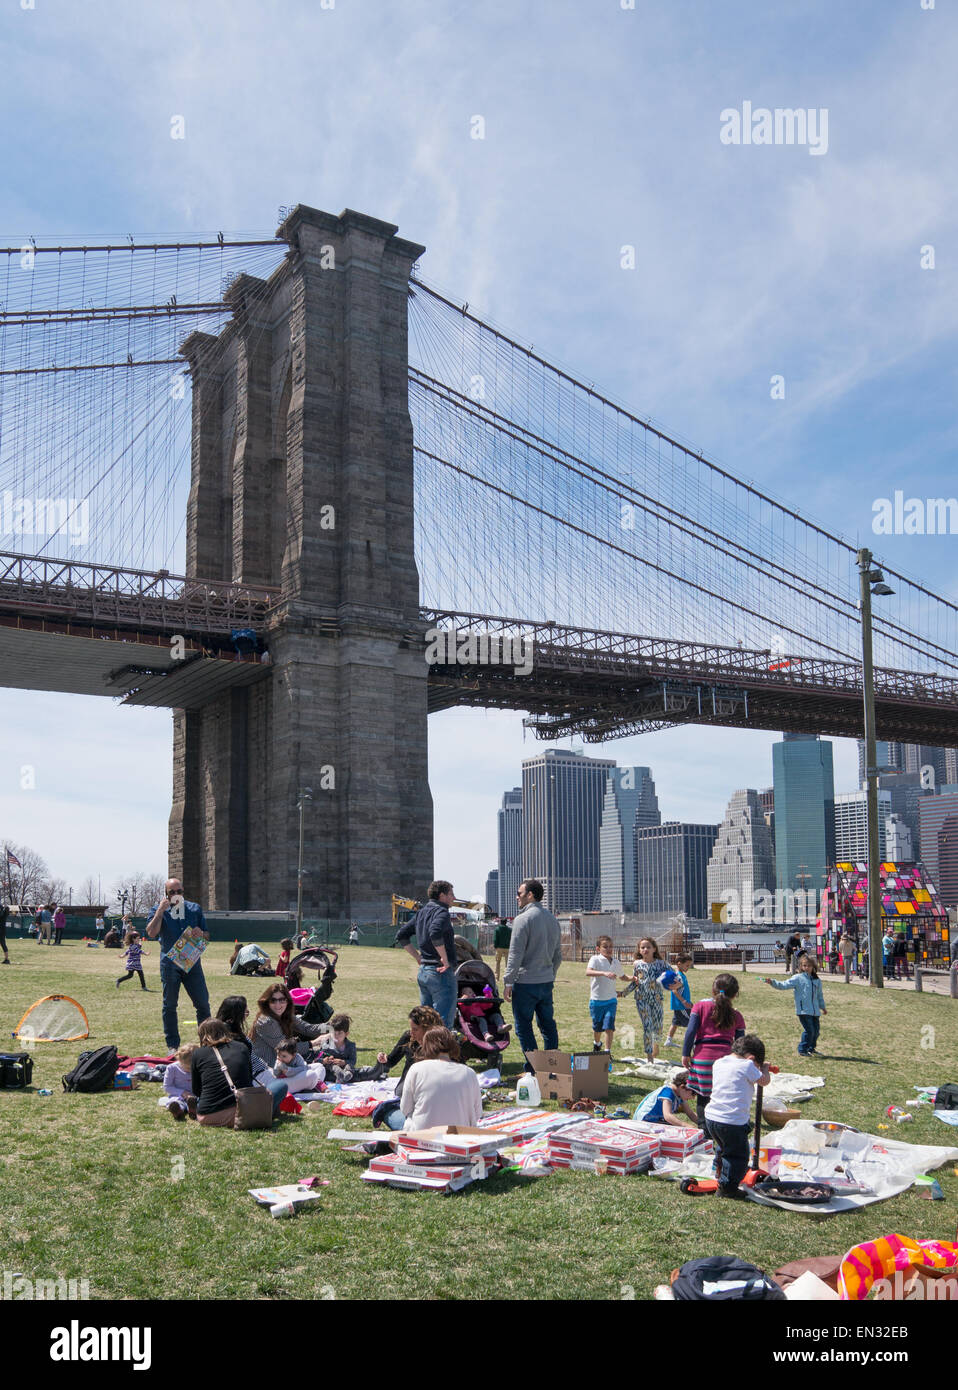 Picnic familiar Brooklyn Bridge park, NUEVA YORK, EE.UU. Imagen De Stock